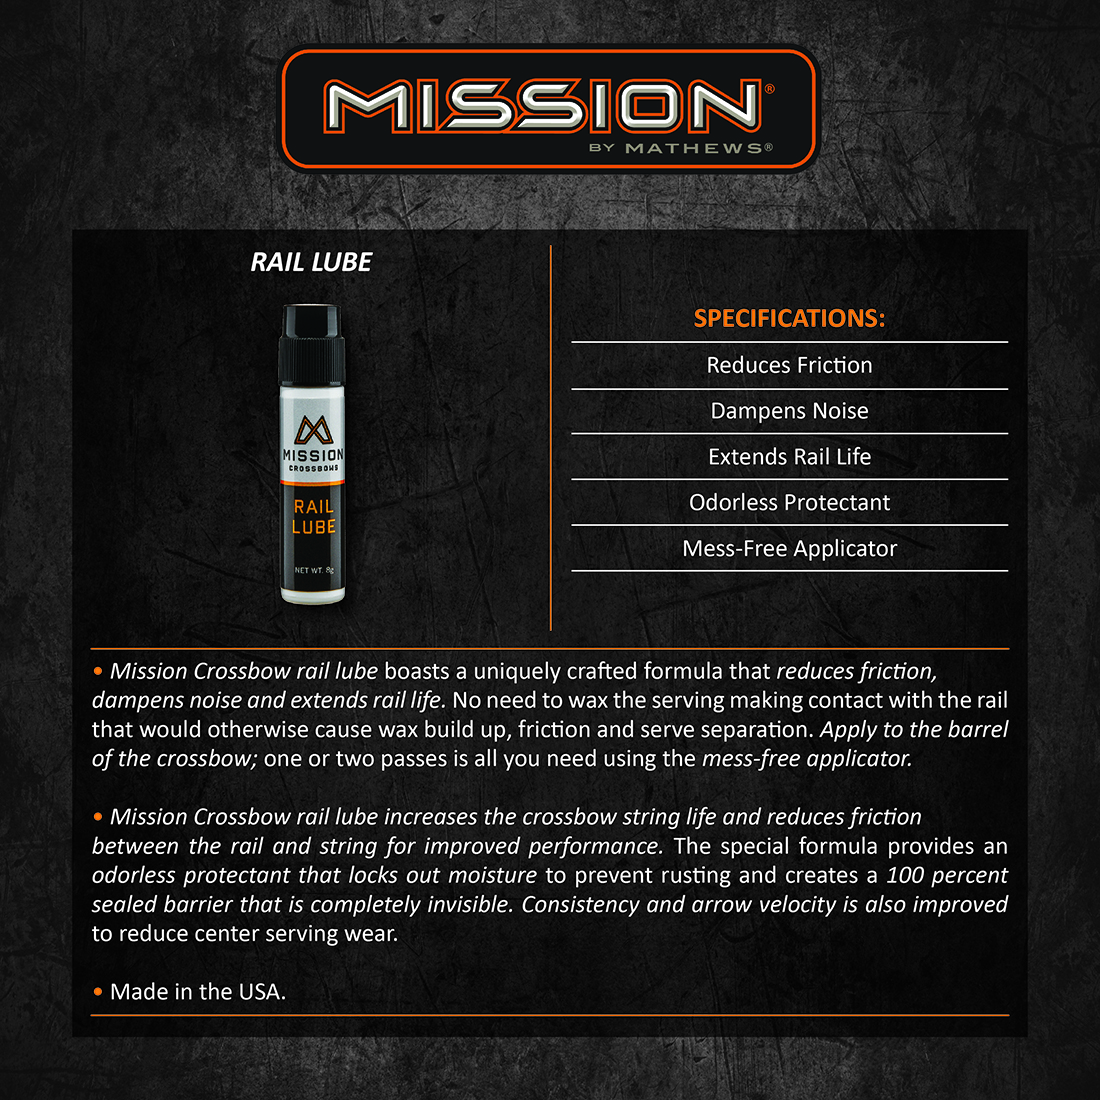 Mission_Crossbows_Rail_Lube_Product_Description